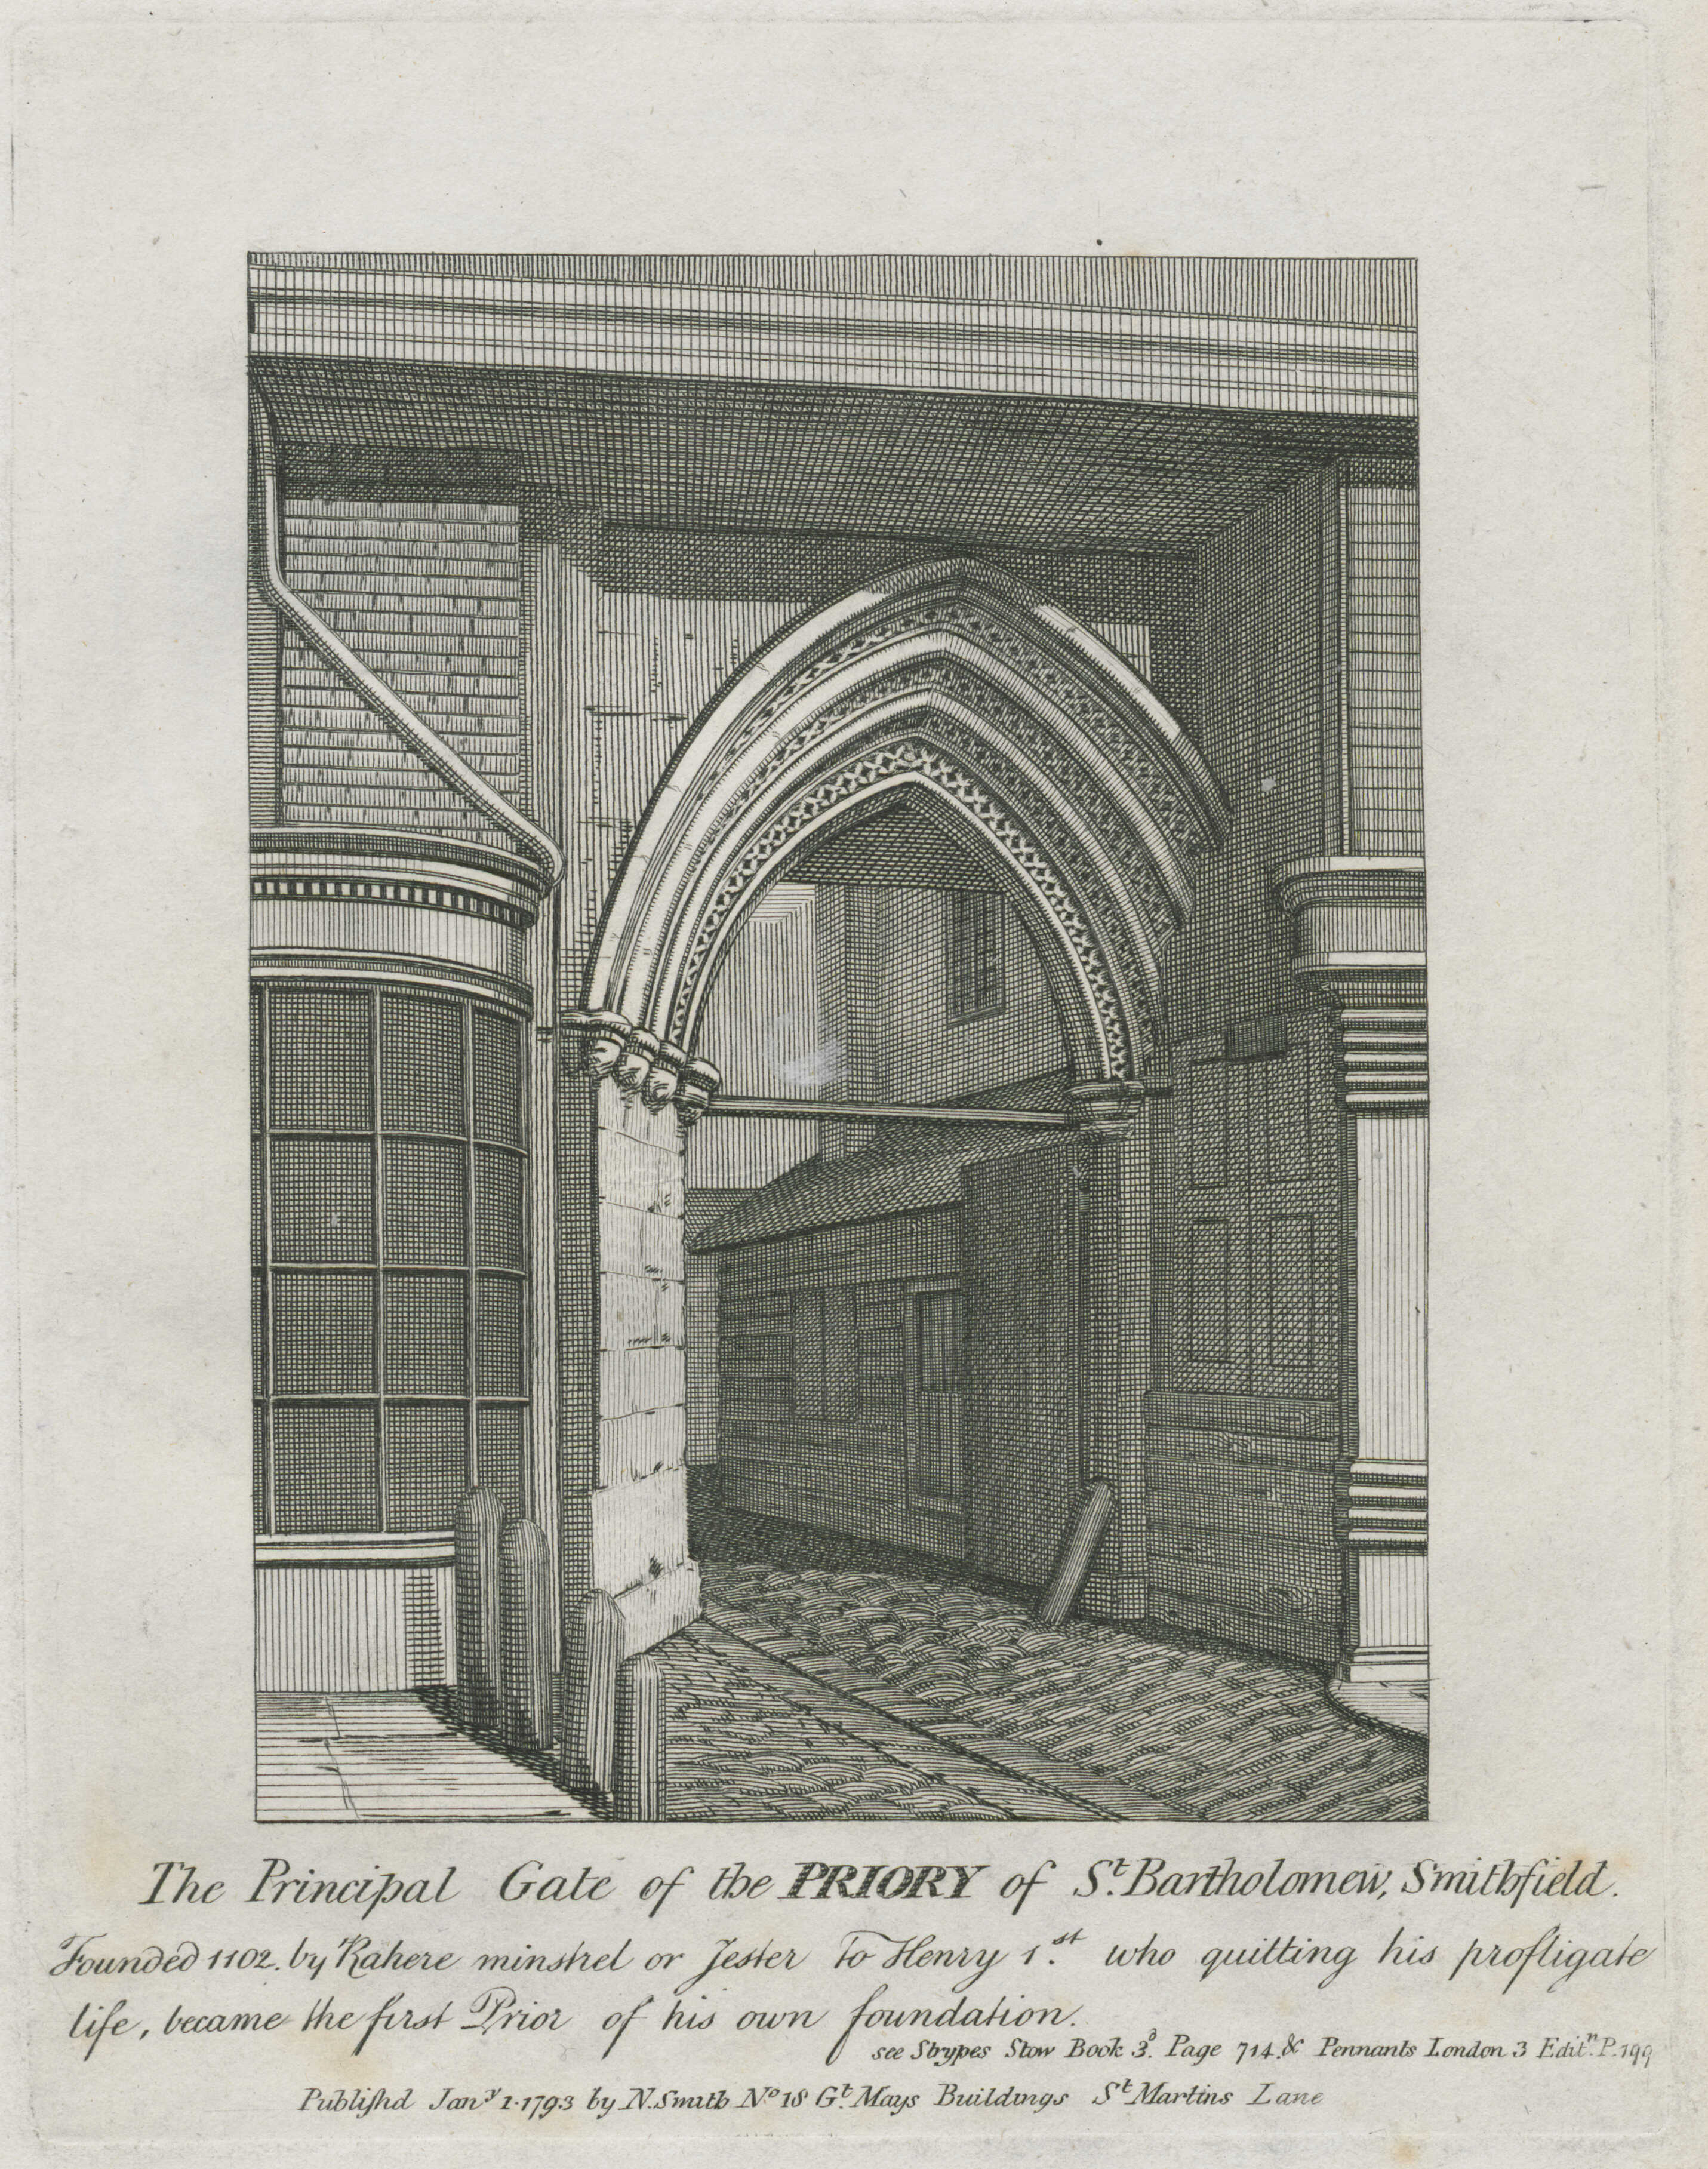 40-the-principal-gate-of-the-priory-of-st-bartholomew-smithfield